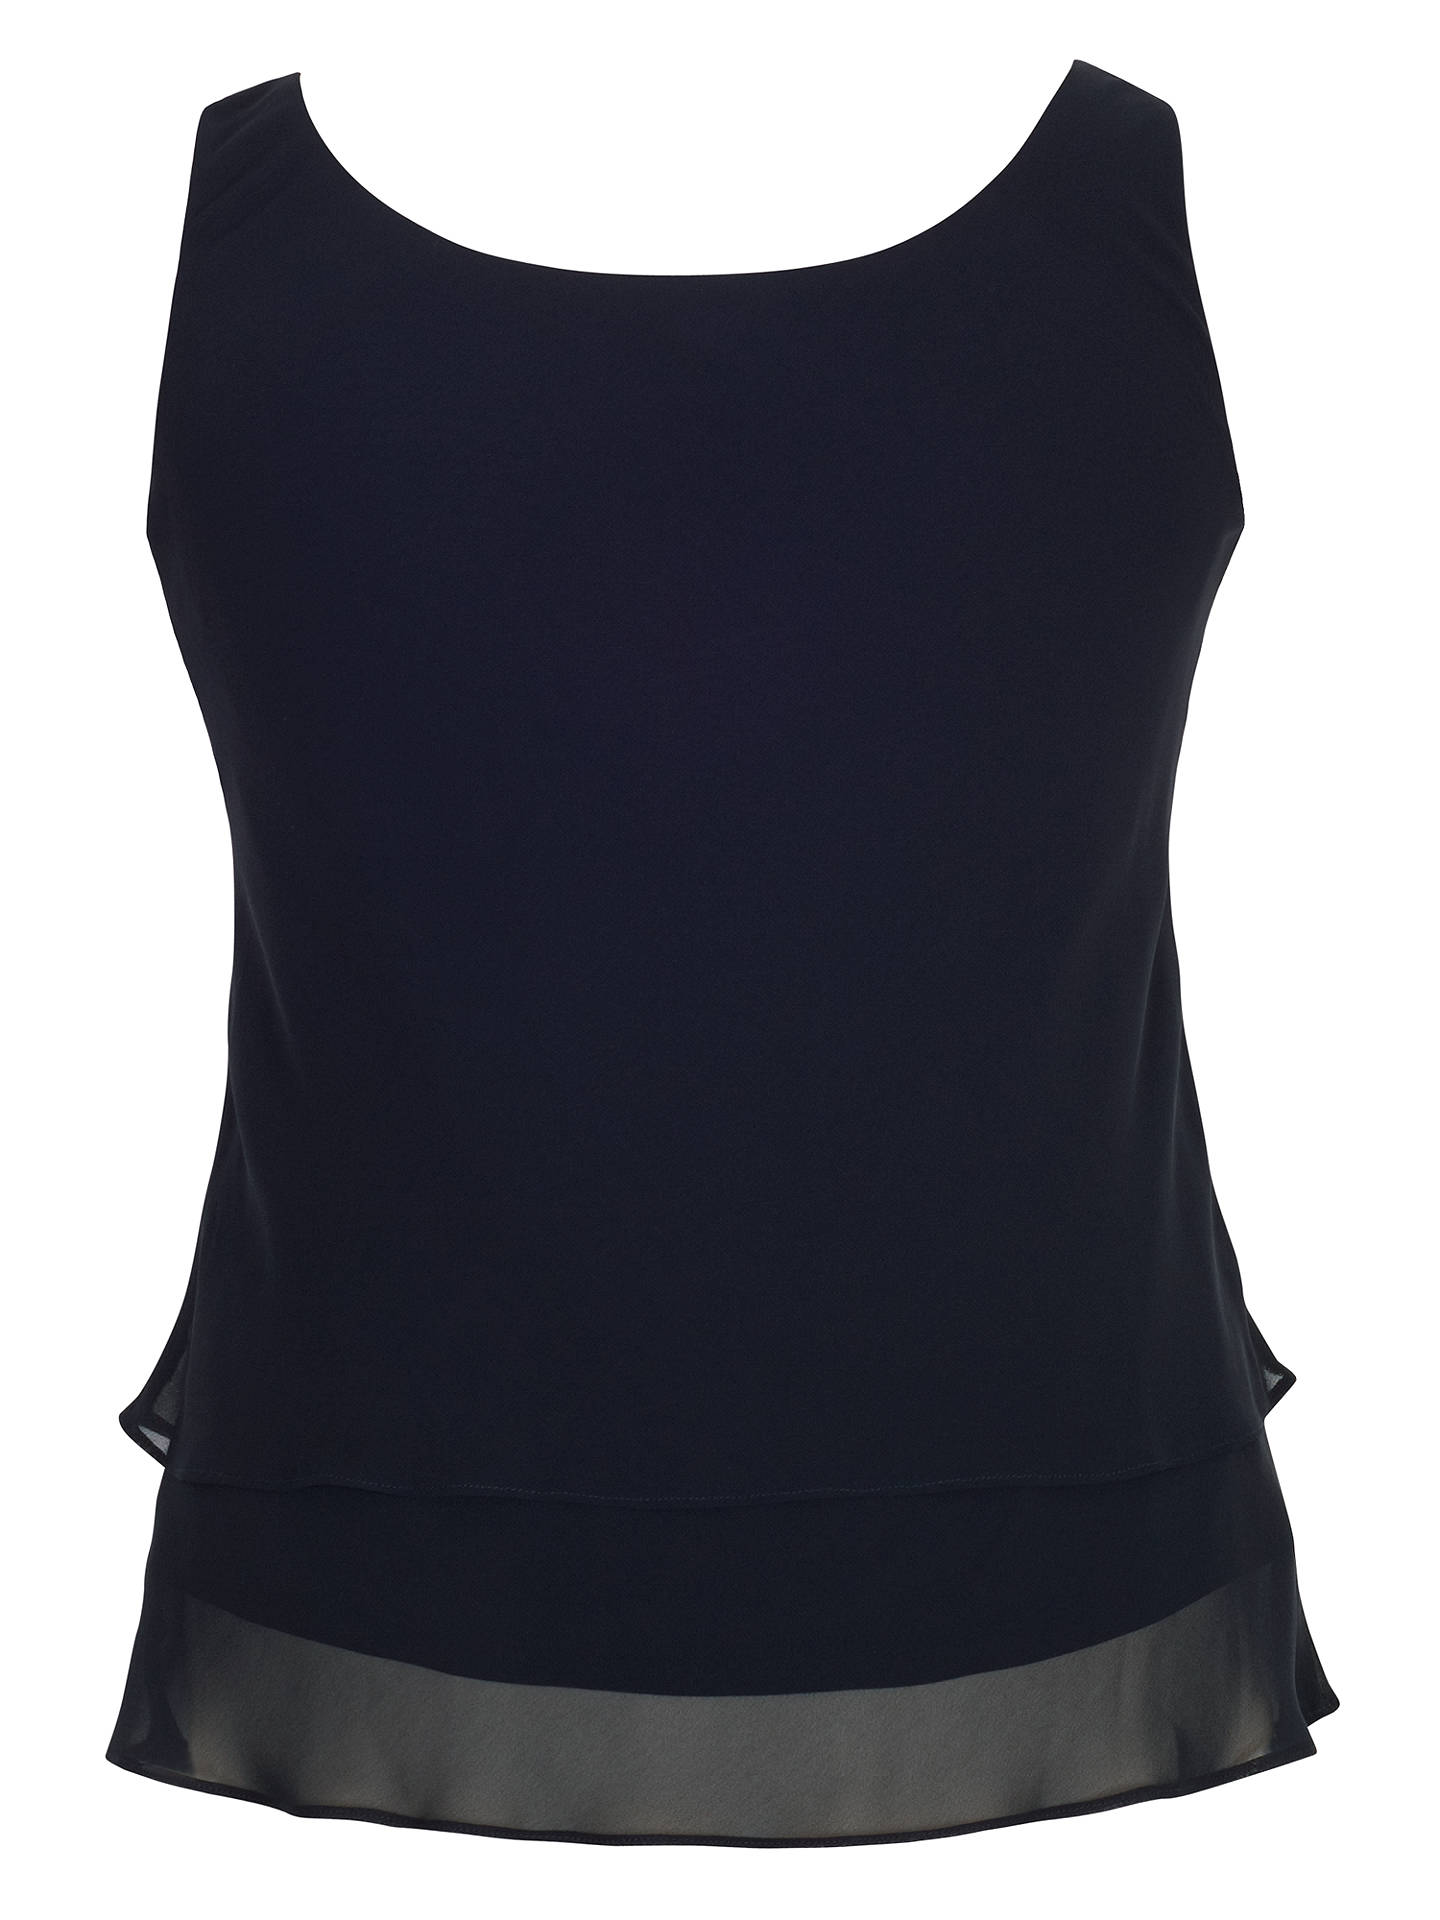 BuyChesca Double Layer Cami, Dark Navy, 14 Online at johnlewis.com